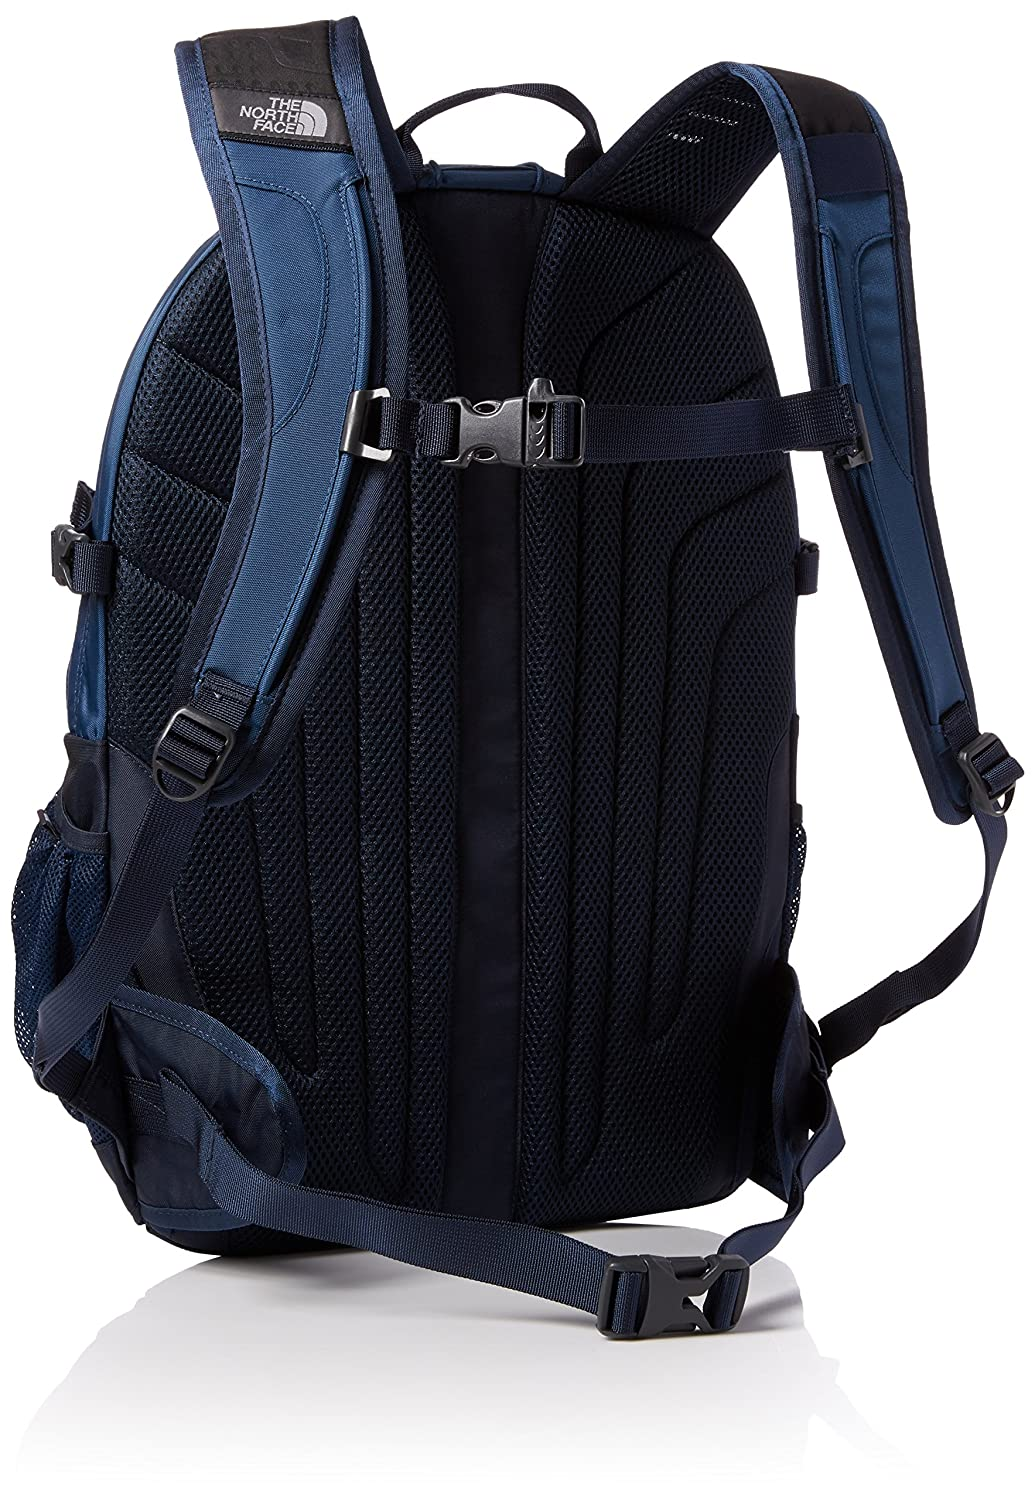 The North Face Borealis desde solo 53,35€